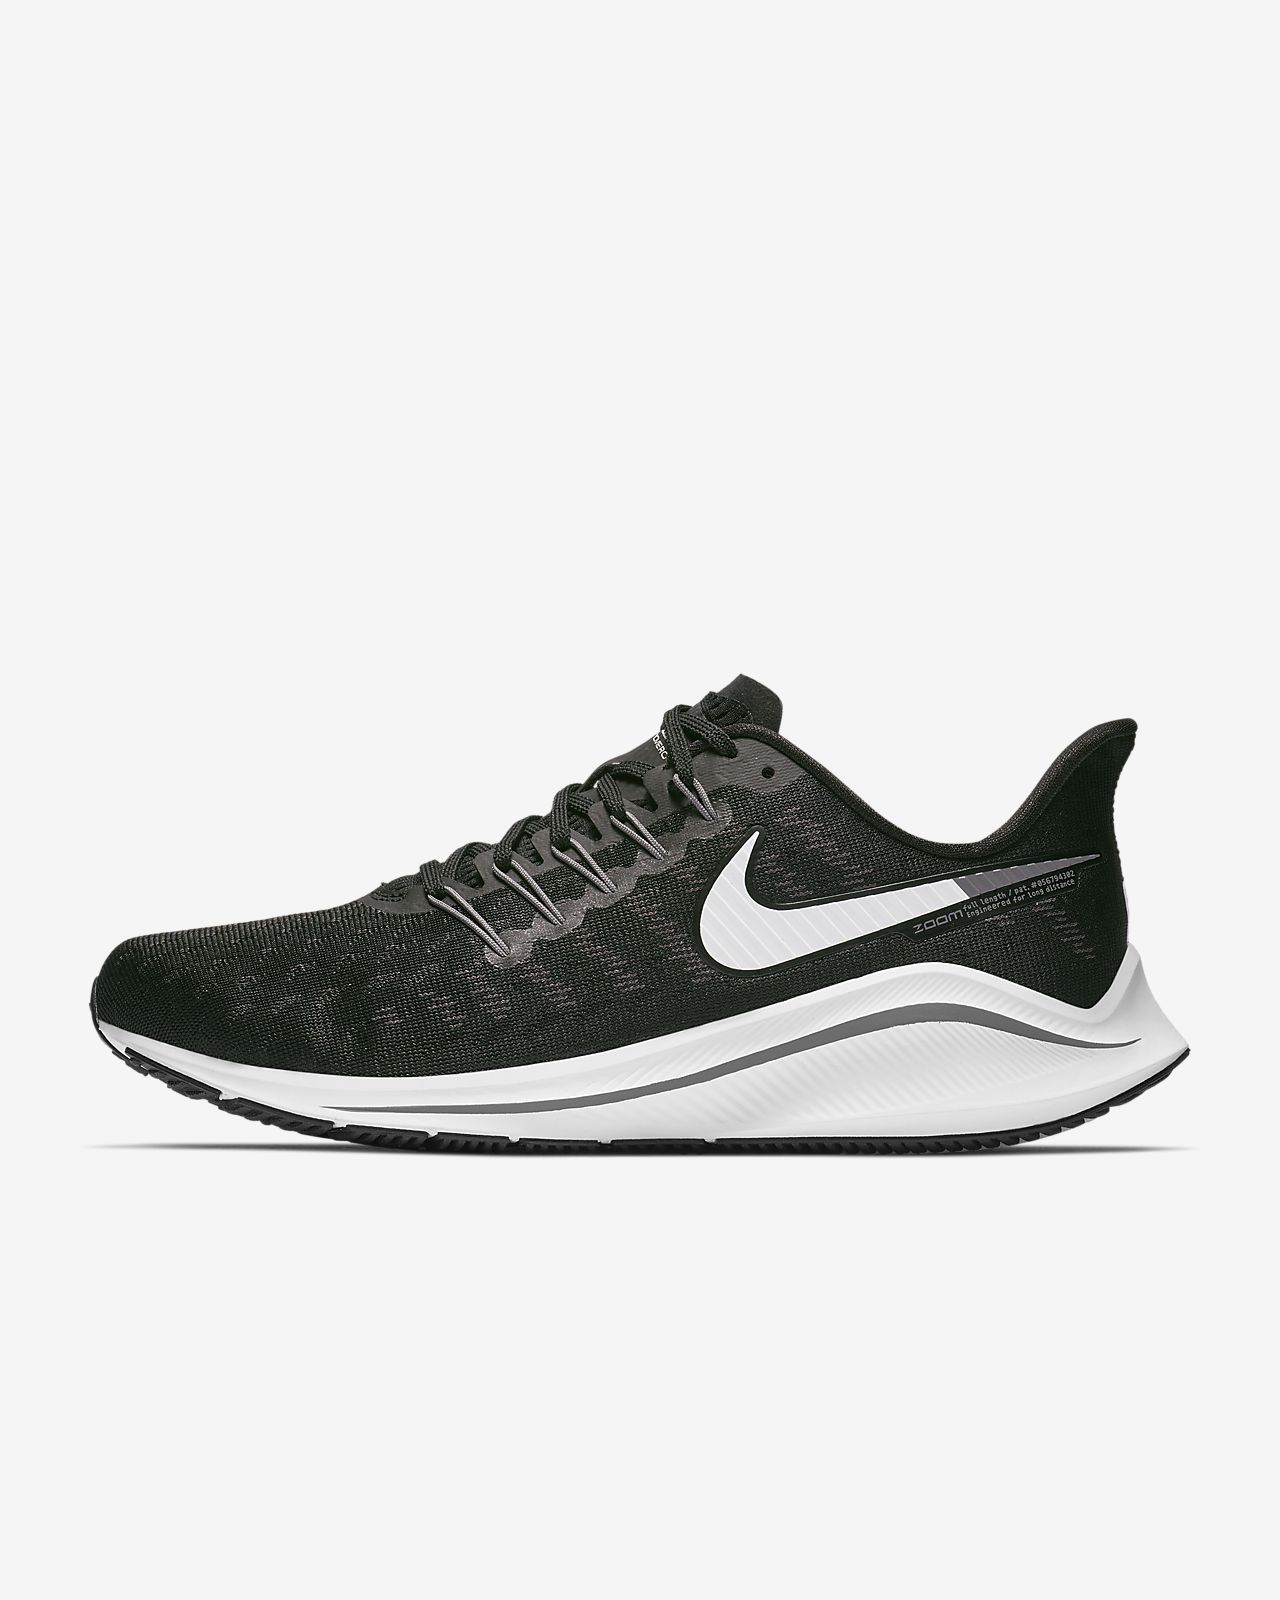 Chaussure de running Nike Air Zoom Vomero 14 pour Homme (extra-large)